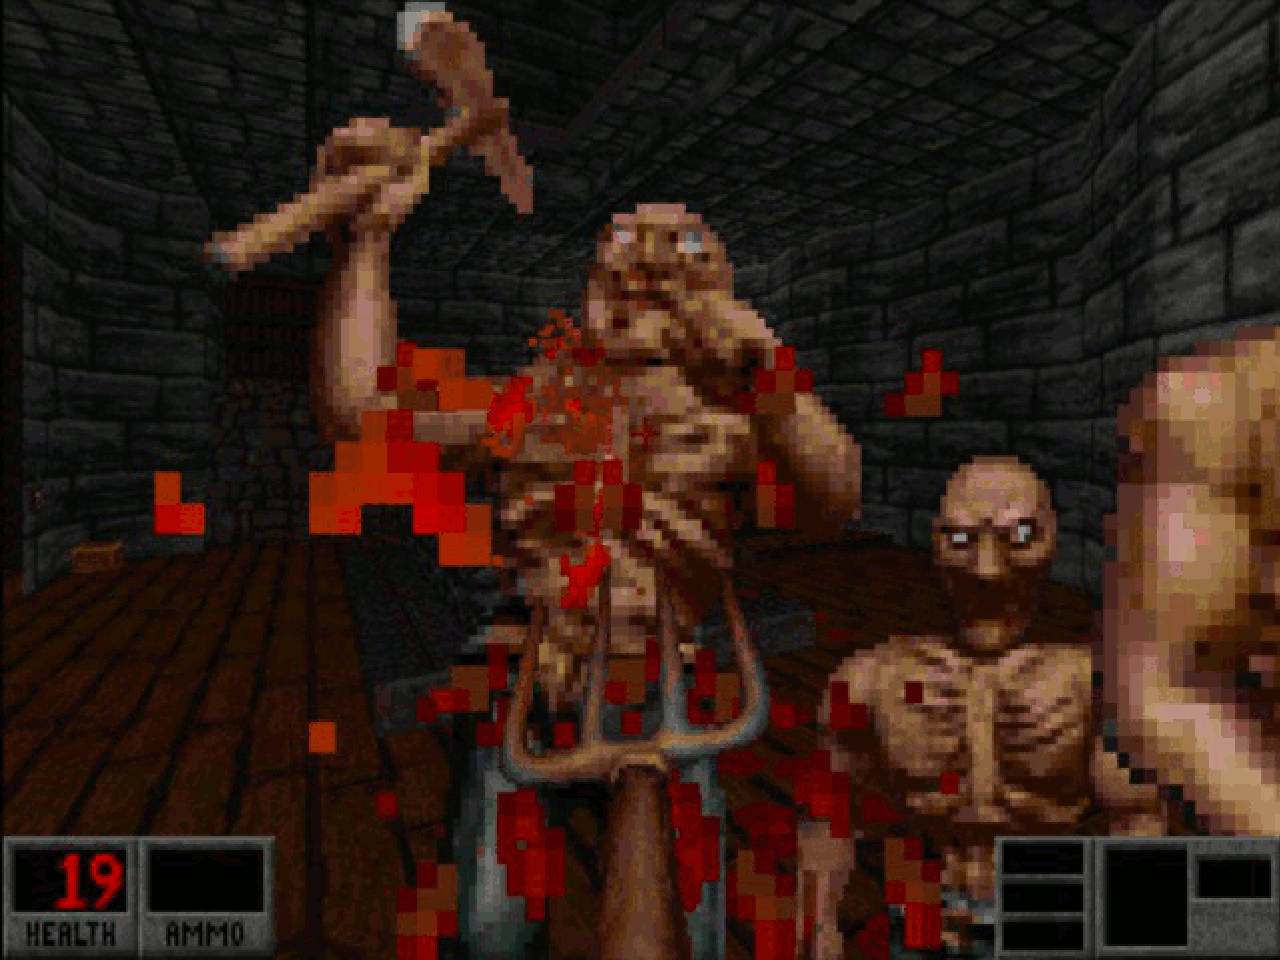 Blood is a first-person shooter video game from 1997 developed by Monolith Productions. (Bild: André Eymann)